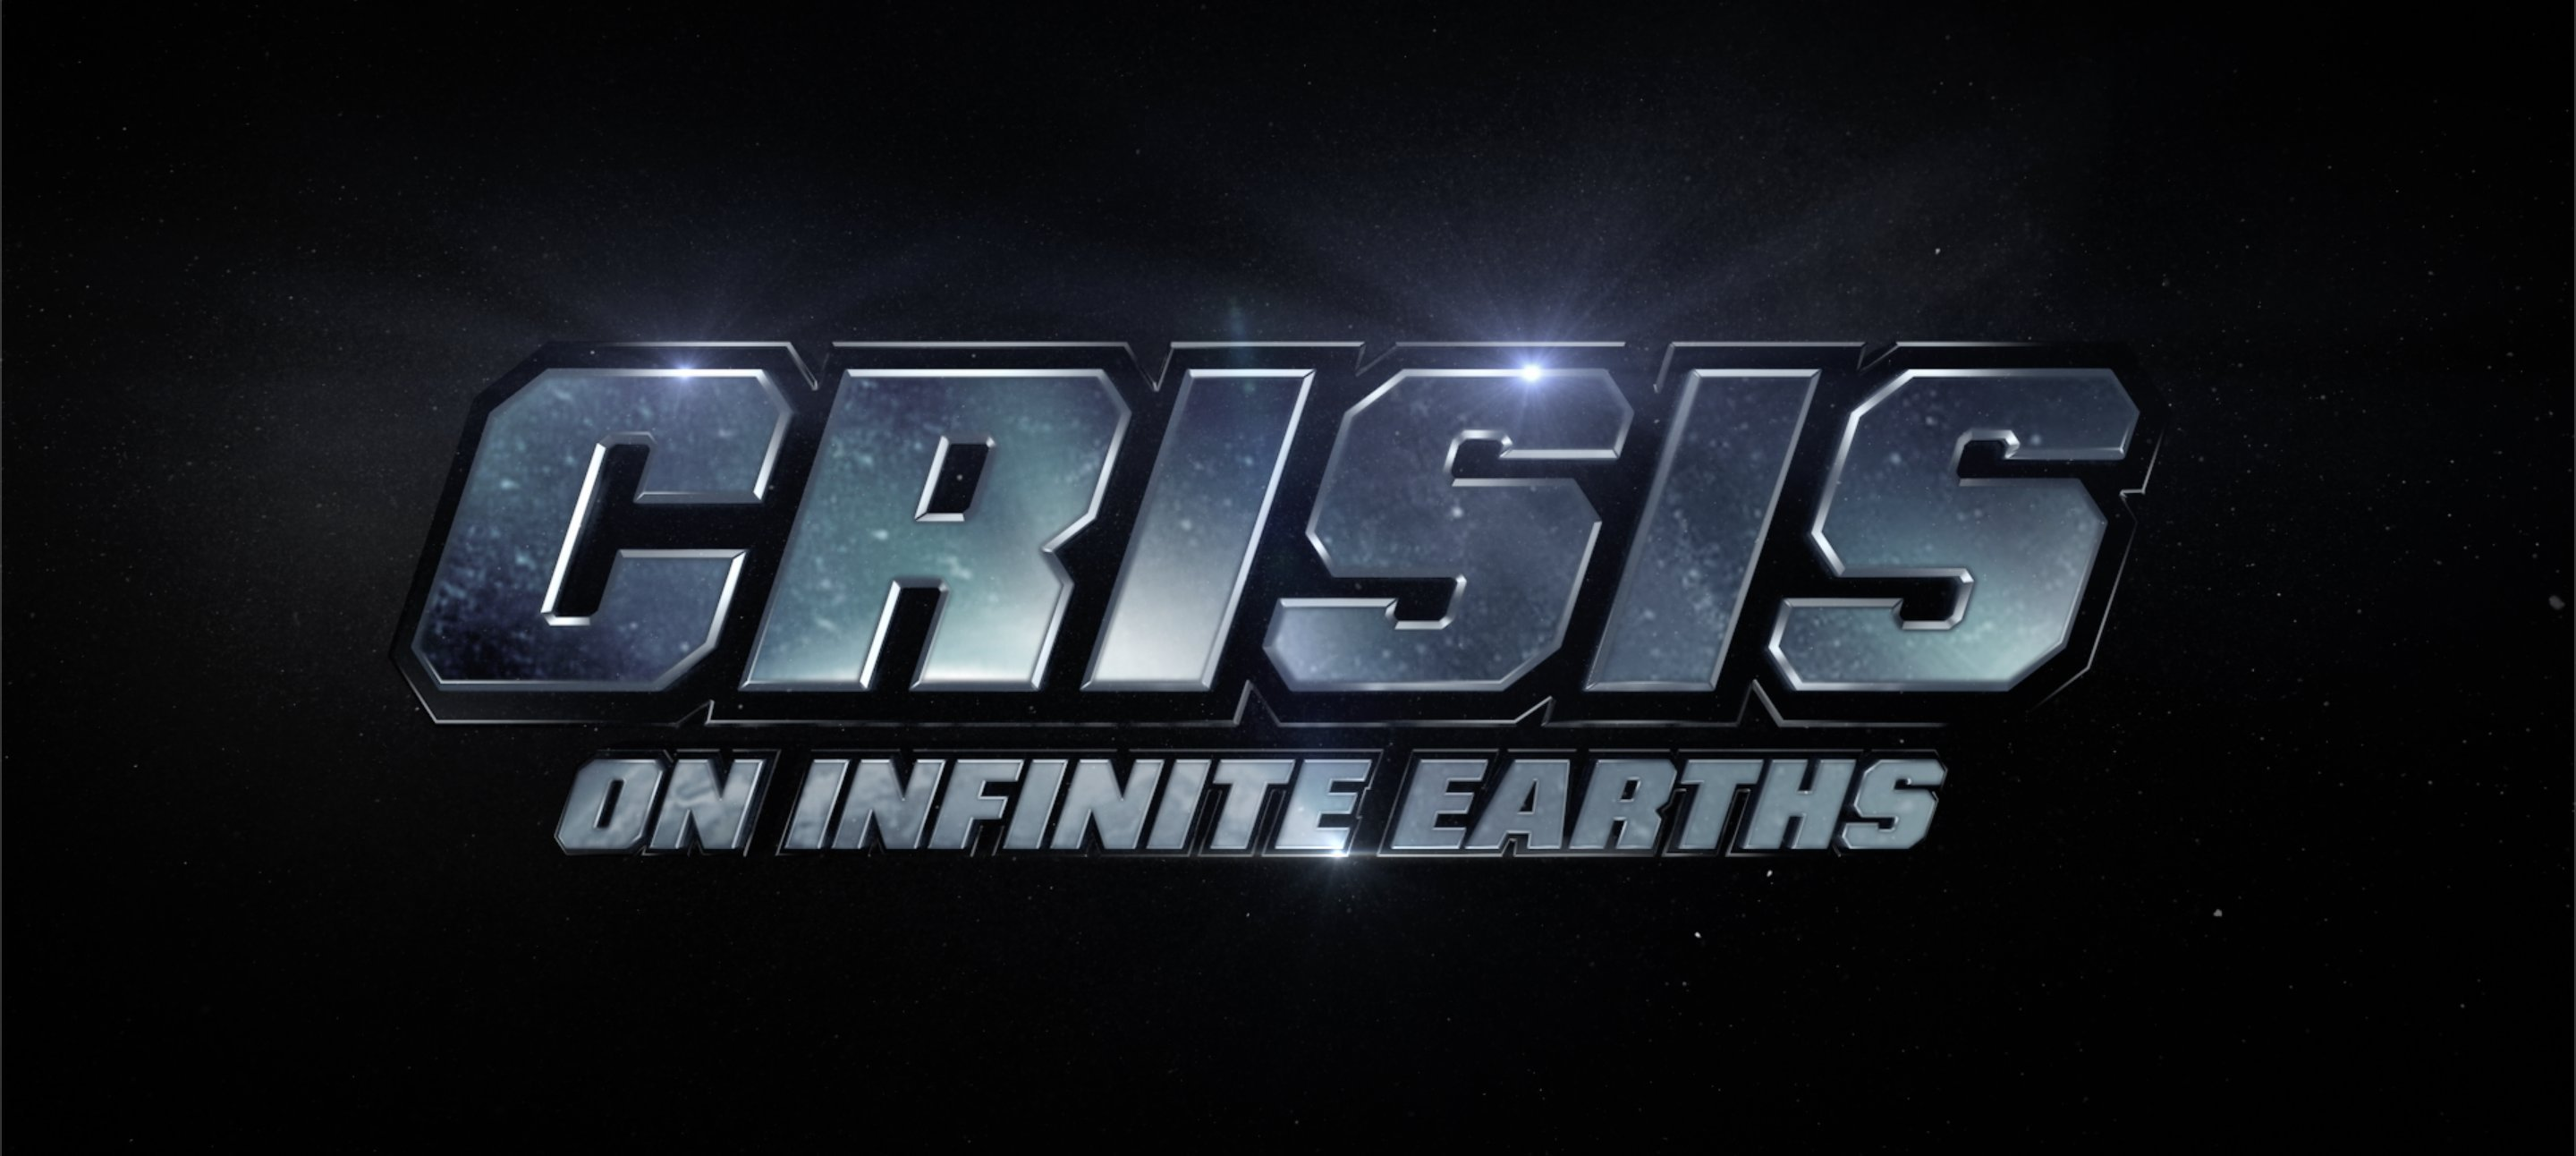 Supergirl (TV Series) Episode: Crisis on Infinite Earths: Part One